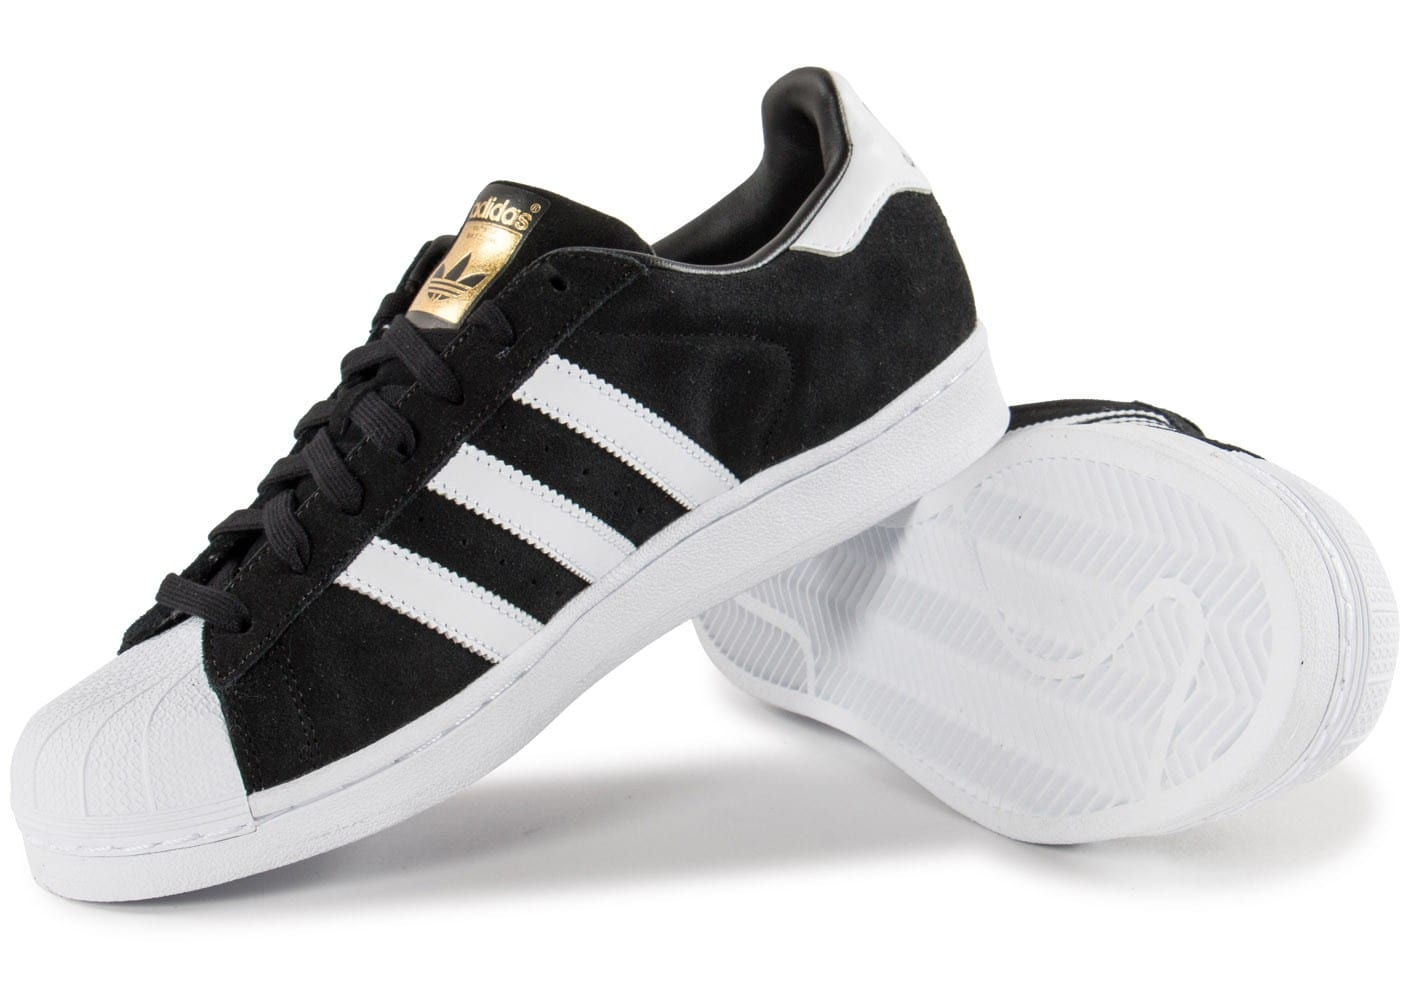 adidas superstar suede noir,Adidas Originals Superstar Suede Noir Or